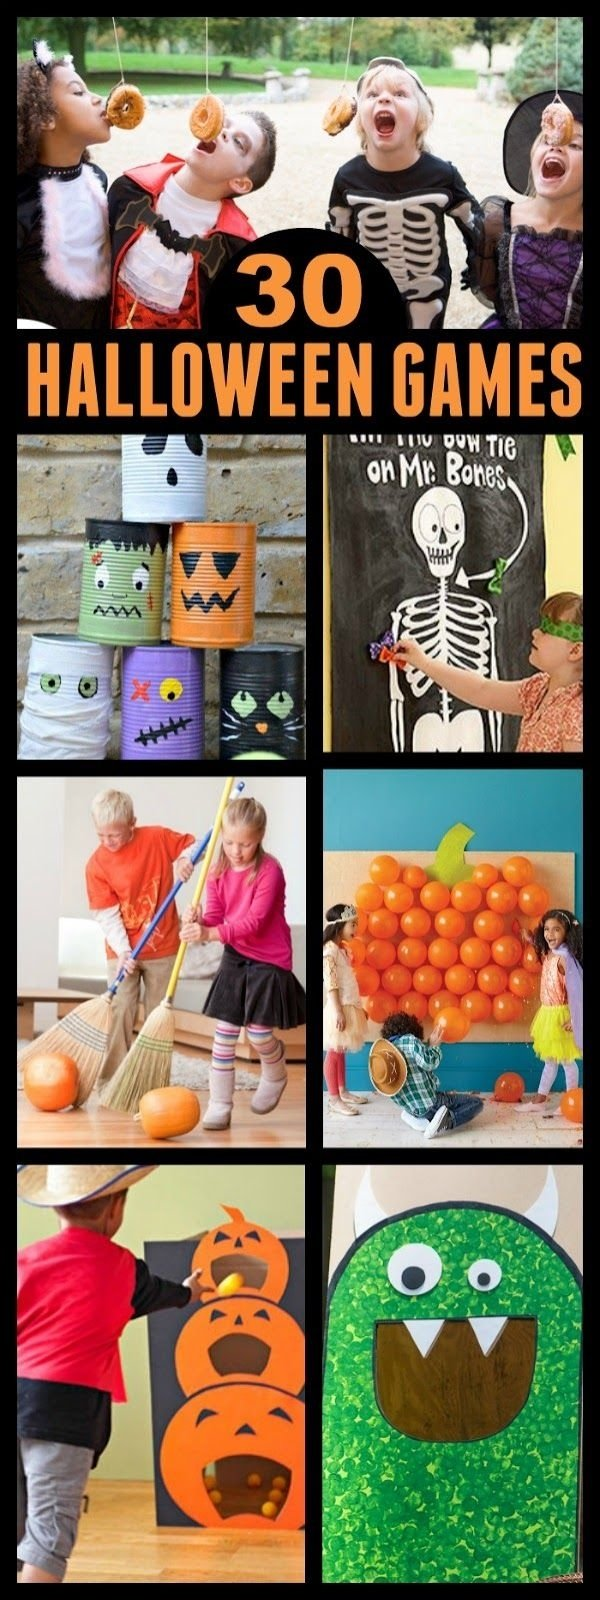 10 Wonderful Halloween Party Ideas For Preschoolers 38 best holiday class party ideas images on pinterest halloween 1 2020